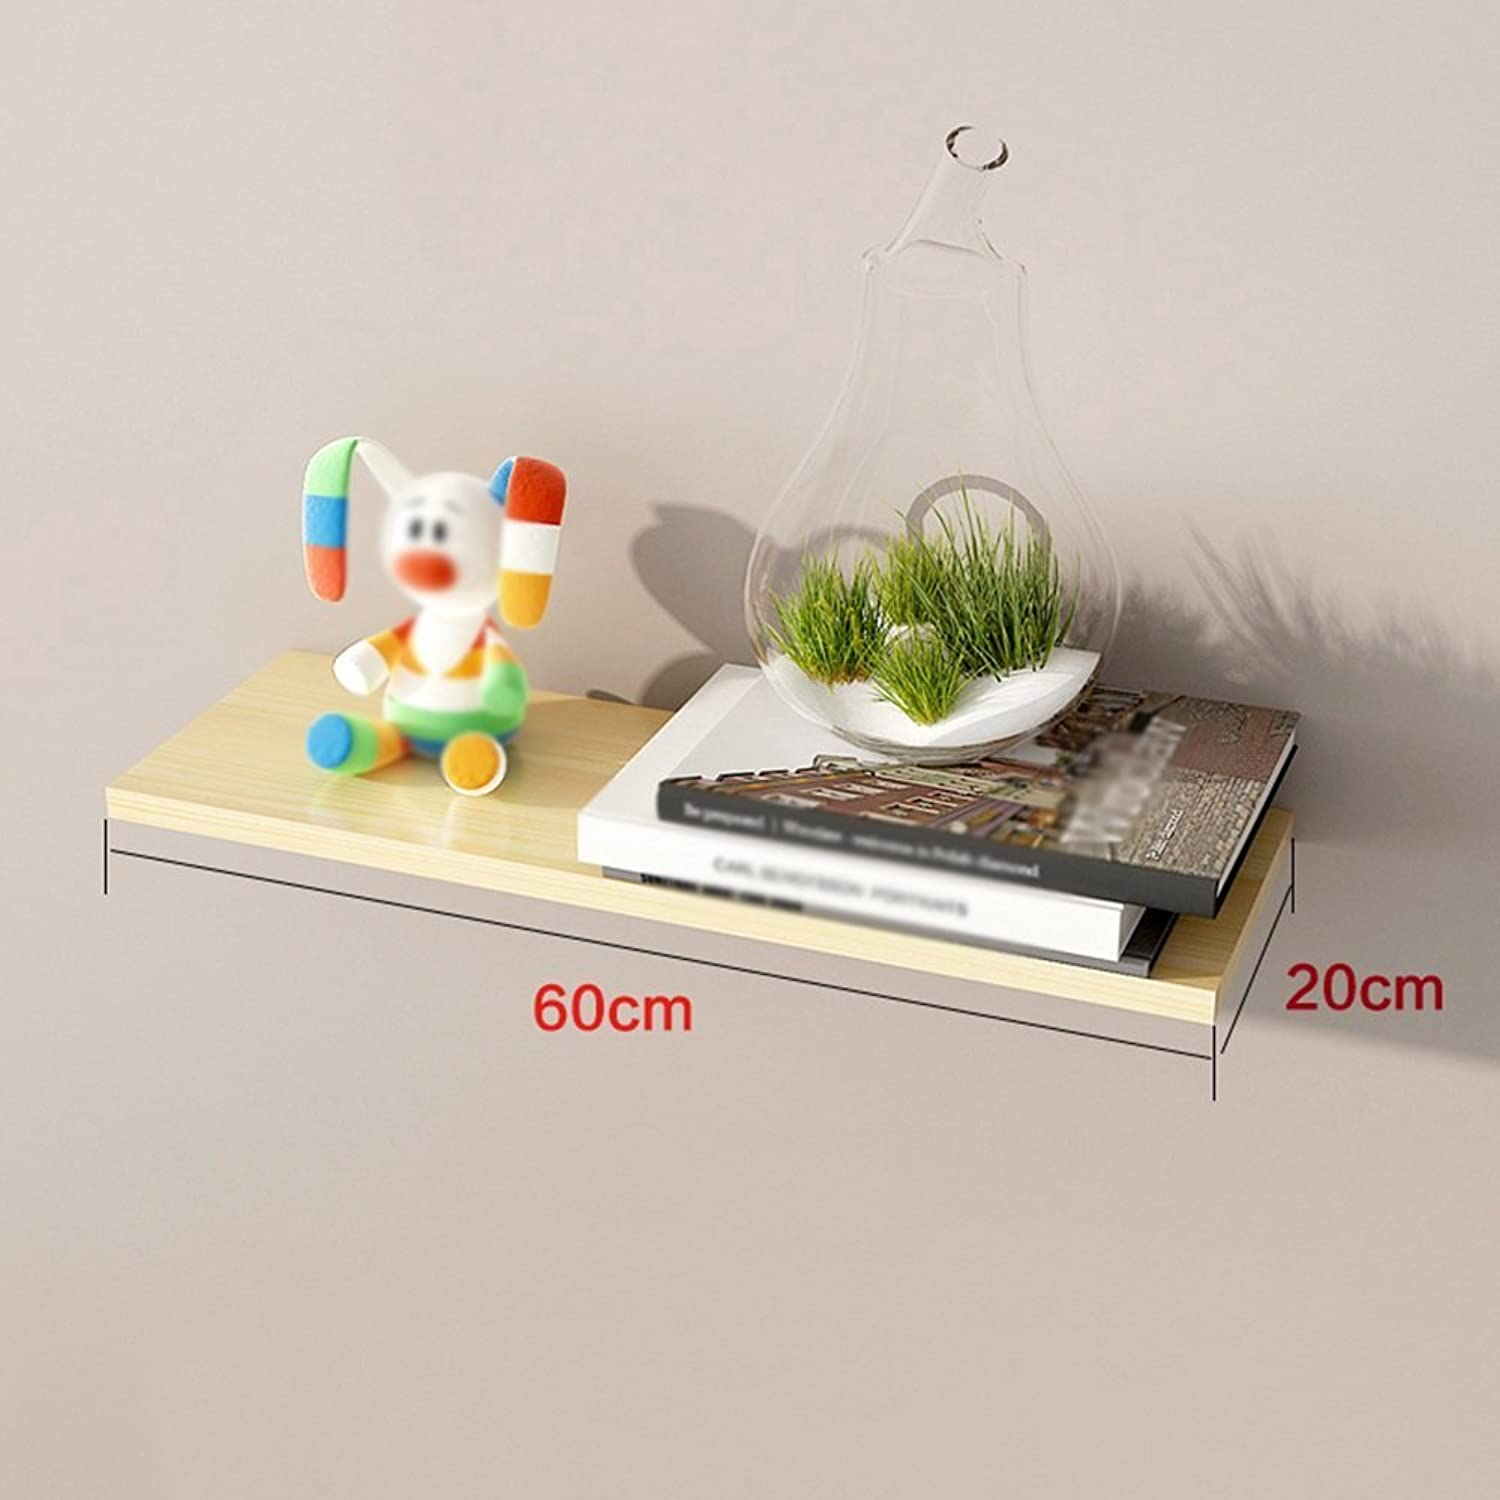 Chunlan Bookshelf Wooden Bookshelf Environmental Predection and Durability Easy to Clean Moisture-Proof Wall Bracket On The Wall Shelves Wall Decorative Frame (Size   60  20cm)